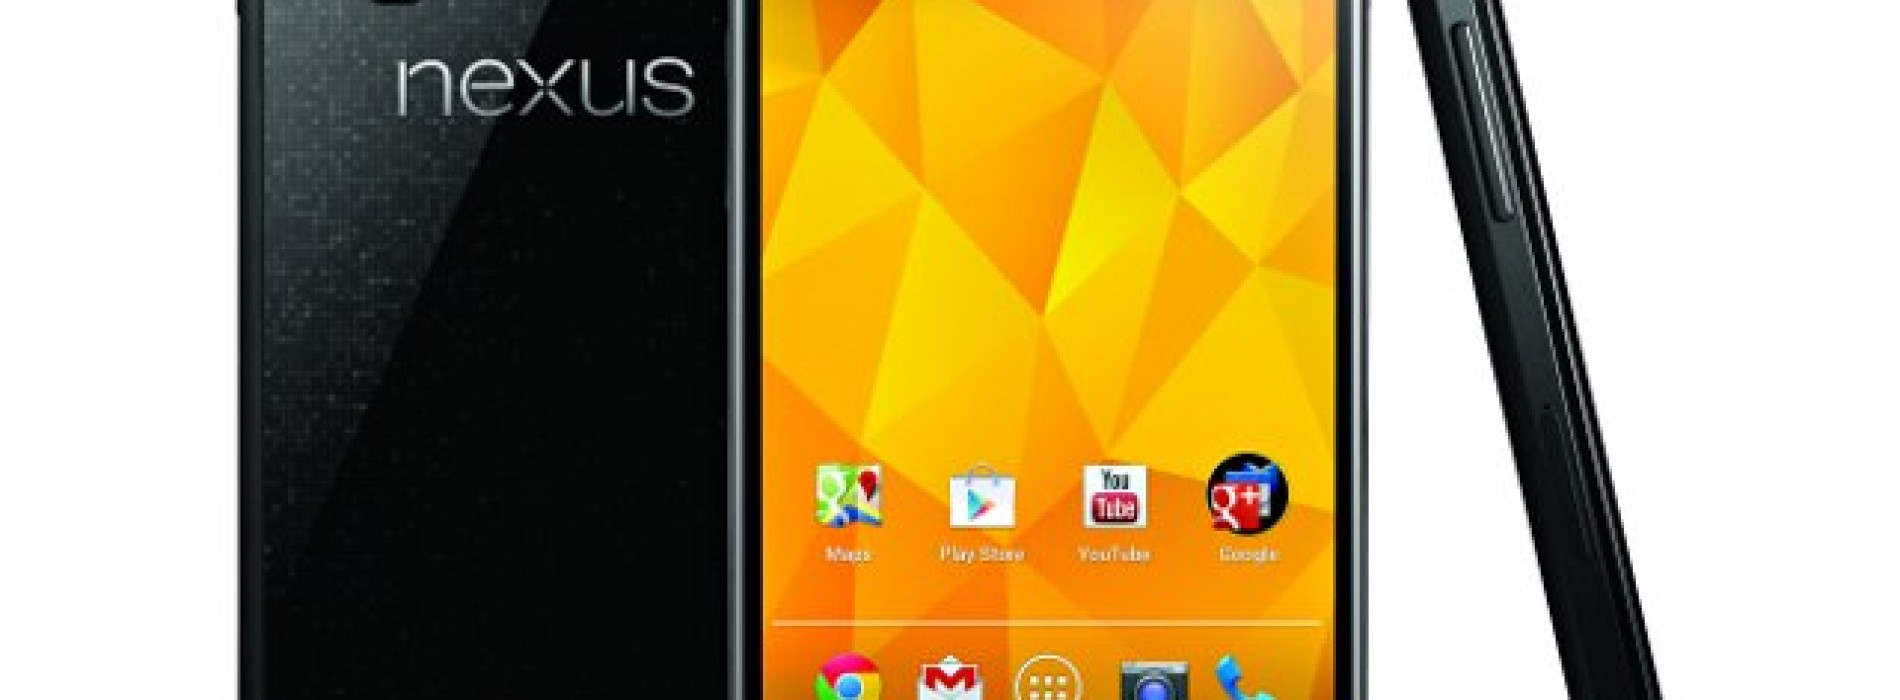 Might Google refresh the Nexus 4 with LTE for Android 4.4?